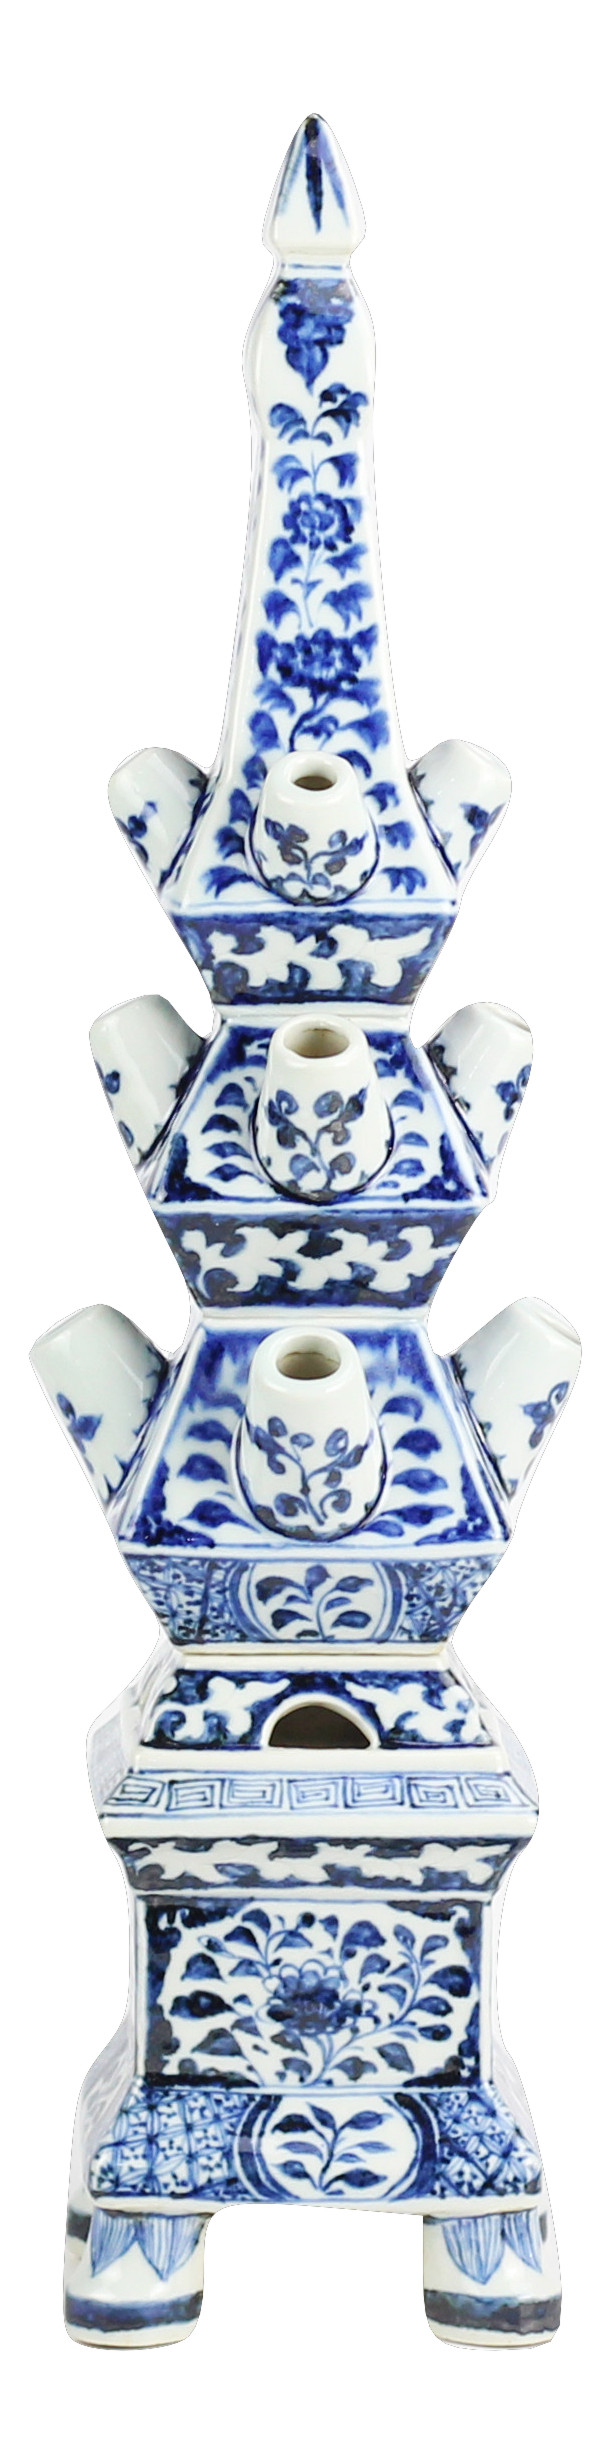 Fabulous blue and white med tulipieres